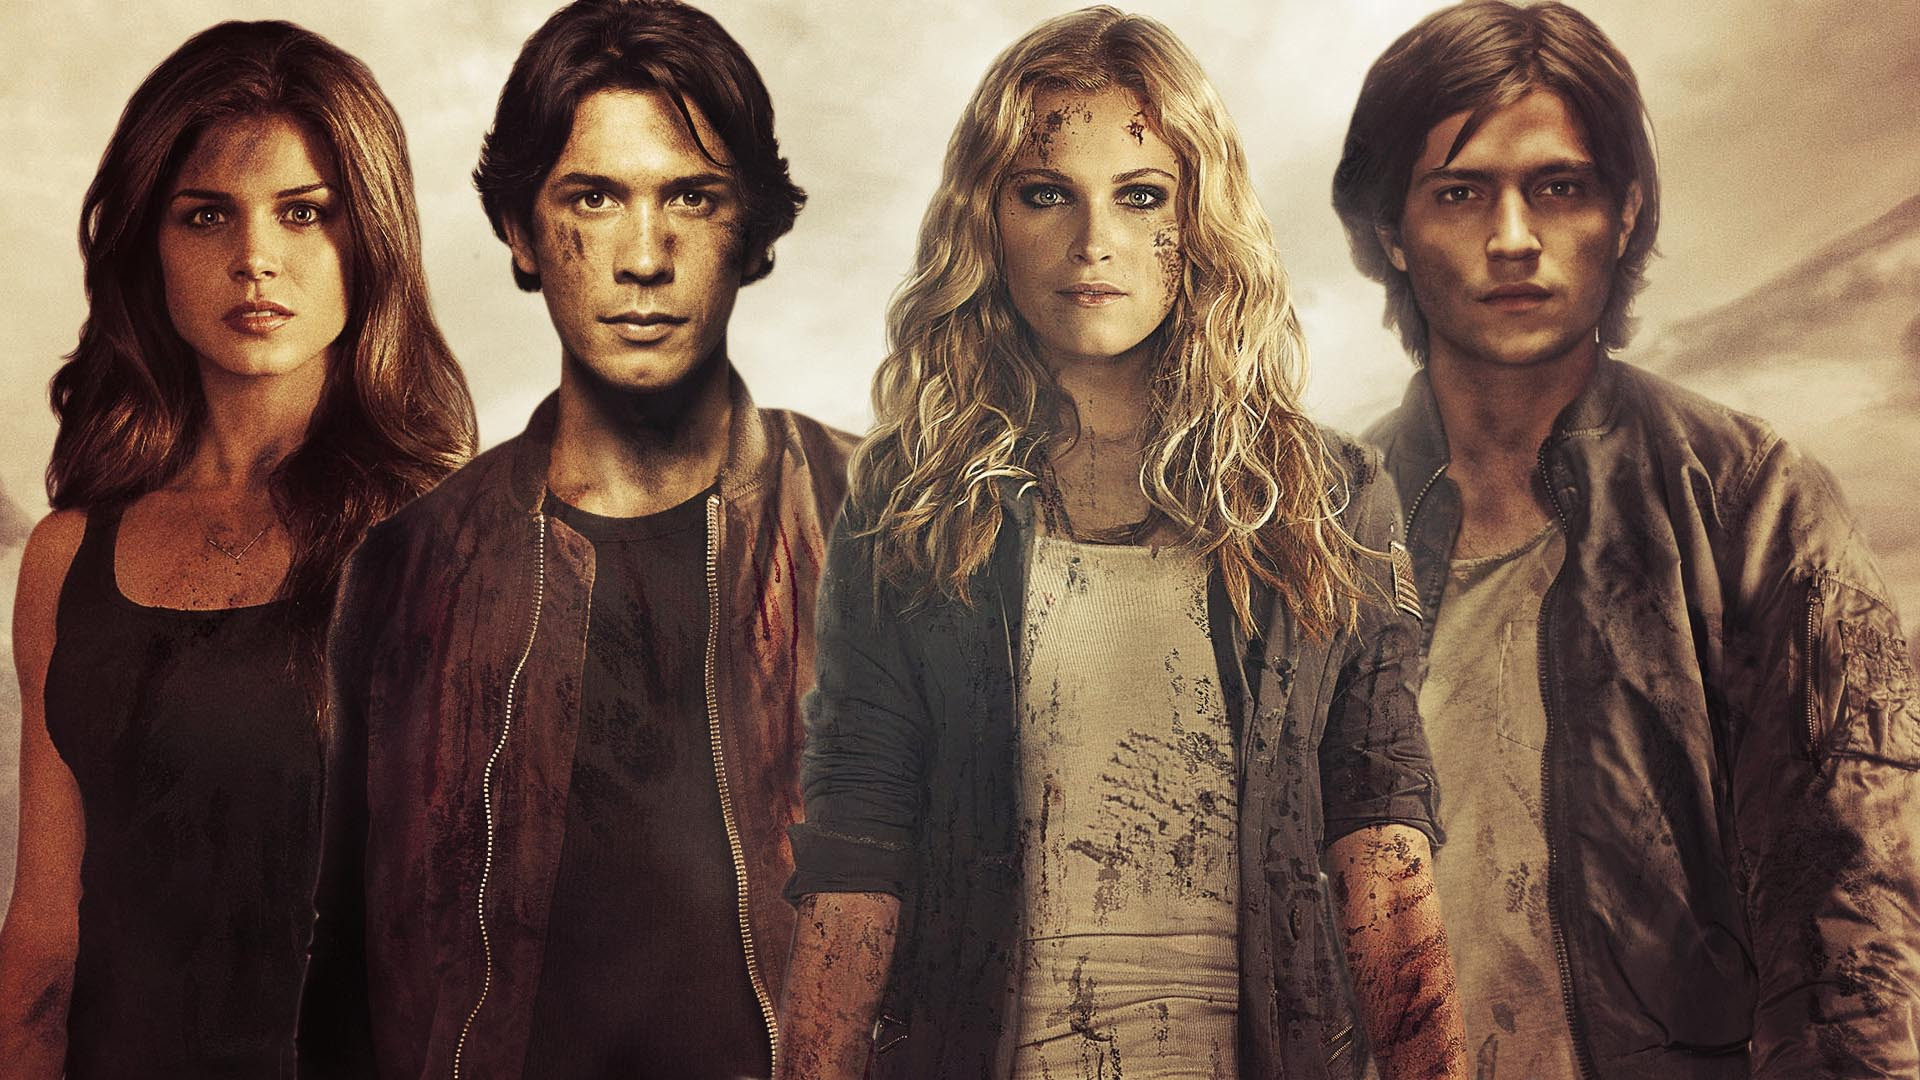 The 100 Images Cast Of The 100 Hd Wallpaper And Background Does